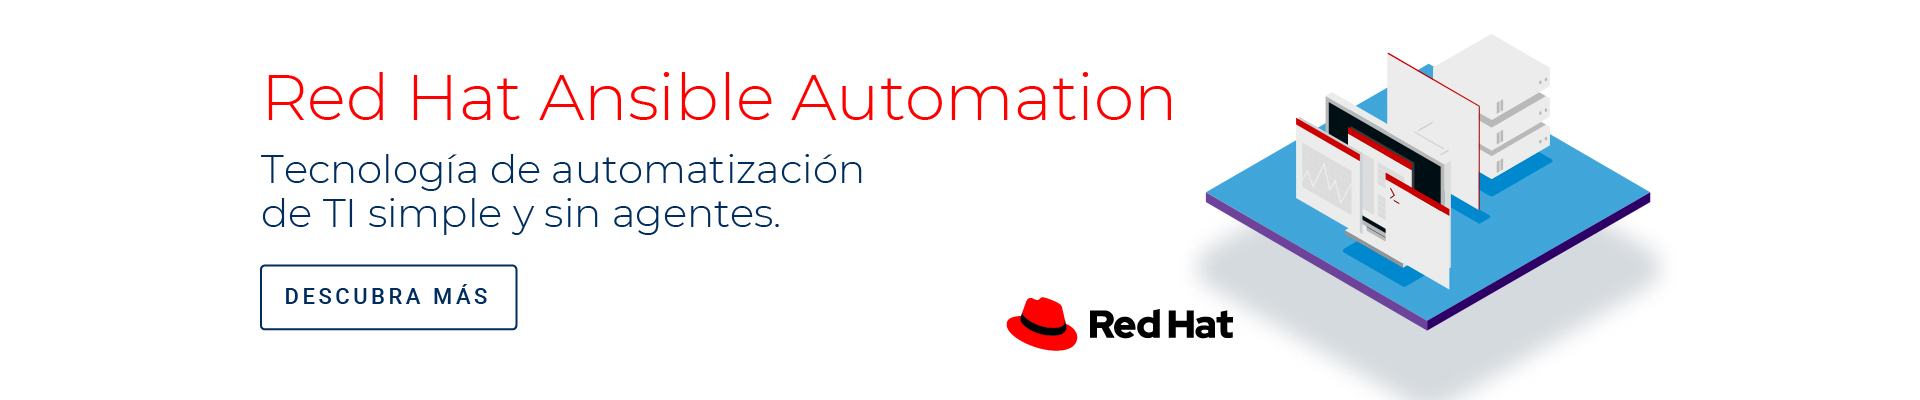 Red Hat Ansible